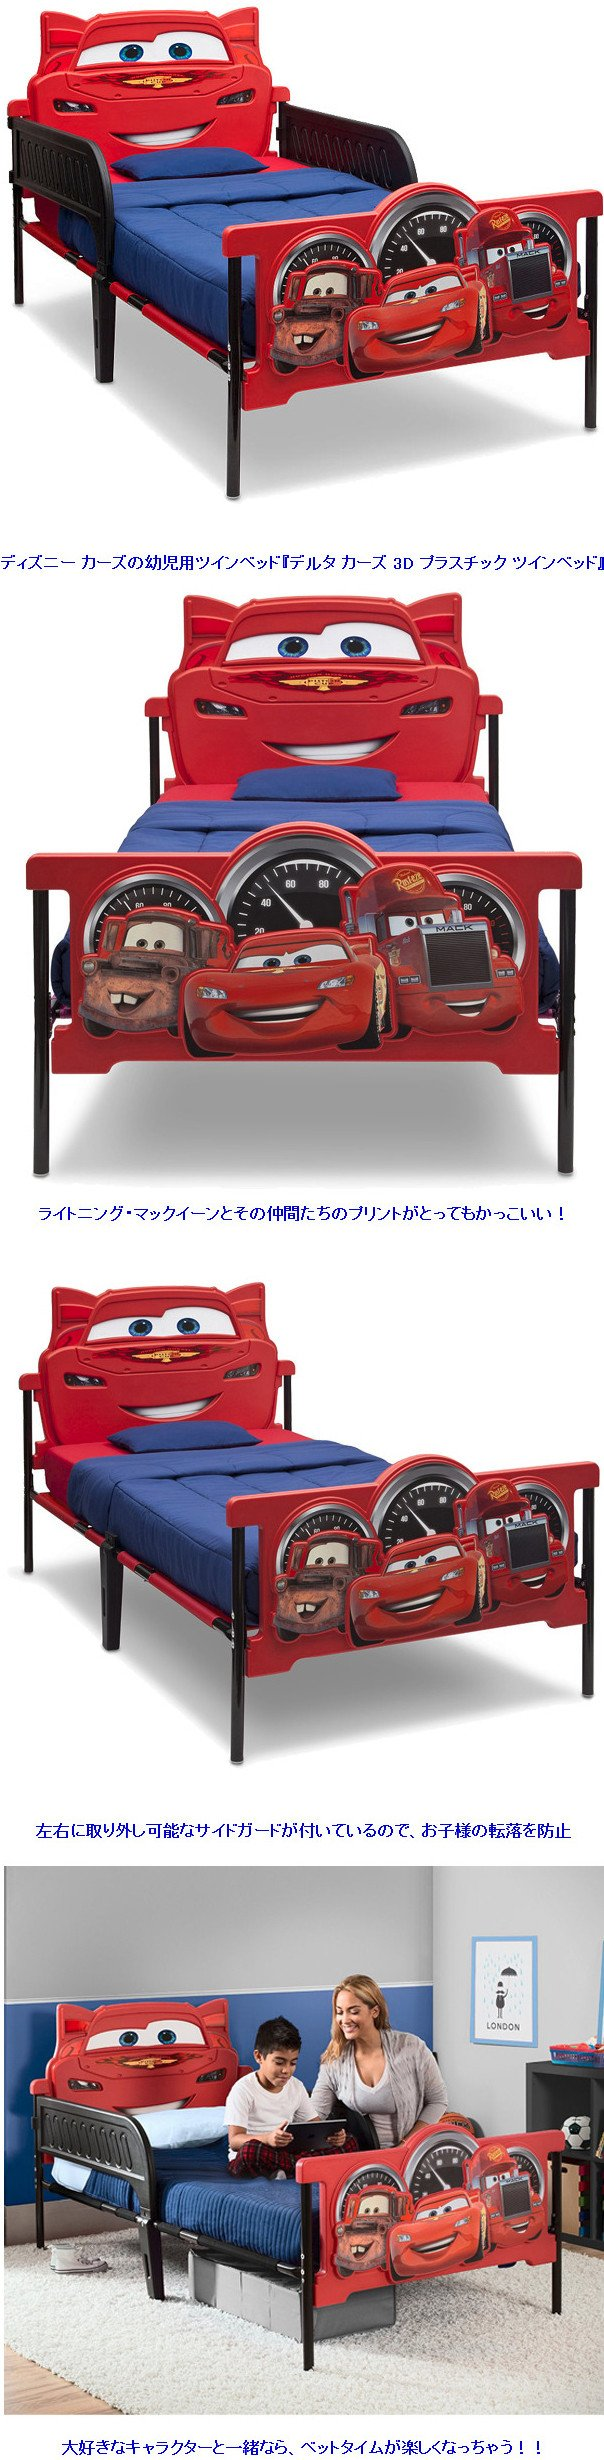 Disney Cars Bedroom Set Unique Furniture Lighting Mcqueen Nursery Delta for the Bed Child for the Bed Child for the Infant for the Delta Disney Cars 3d Plastic Twin Bed toddler Bed